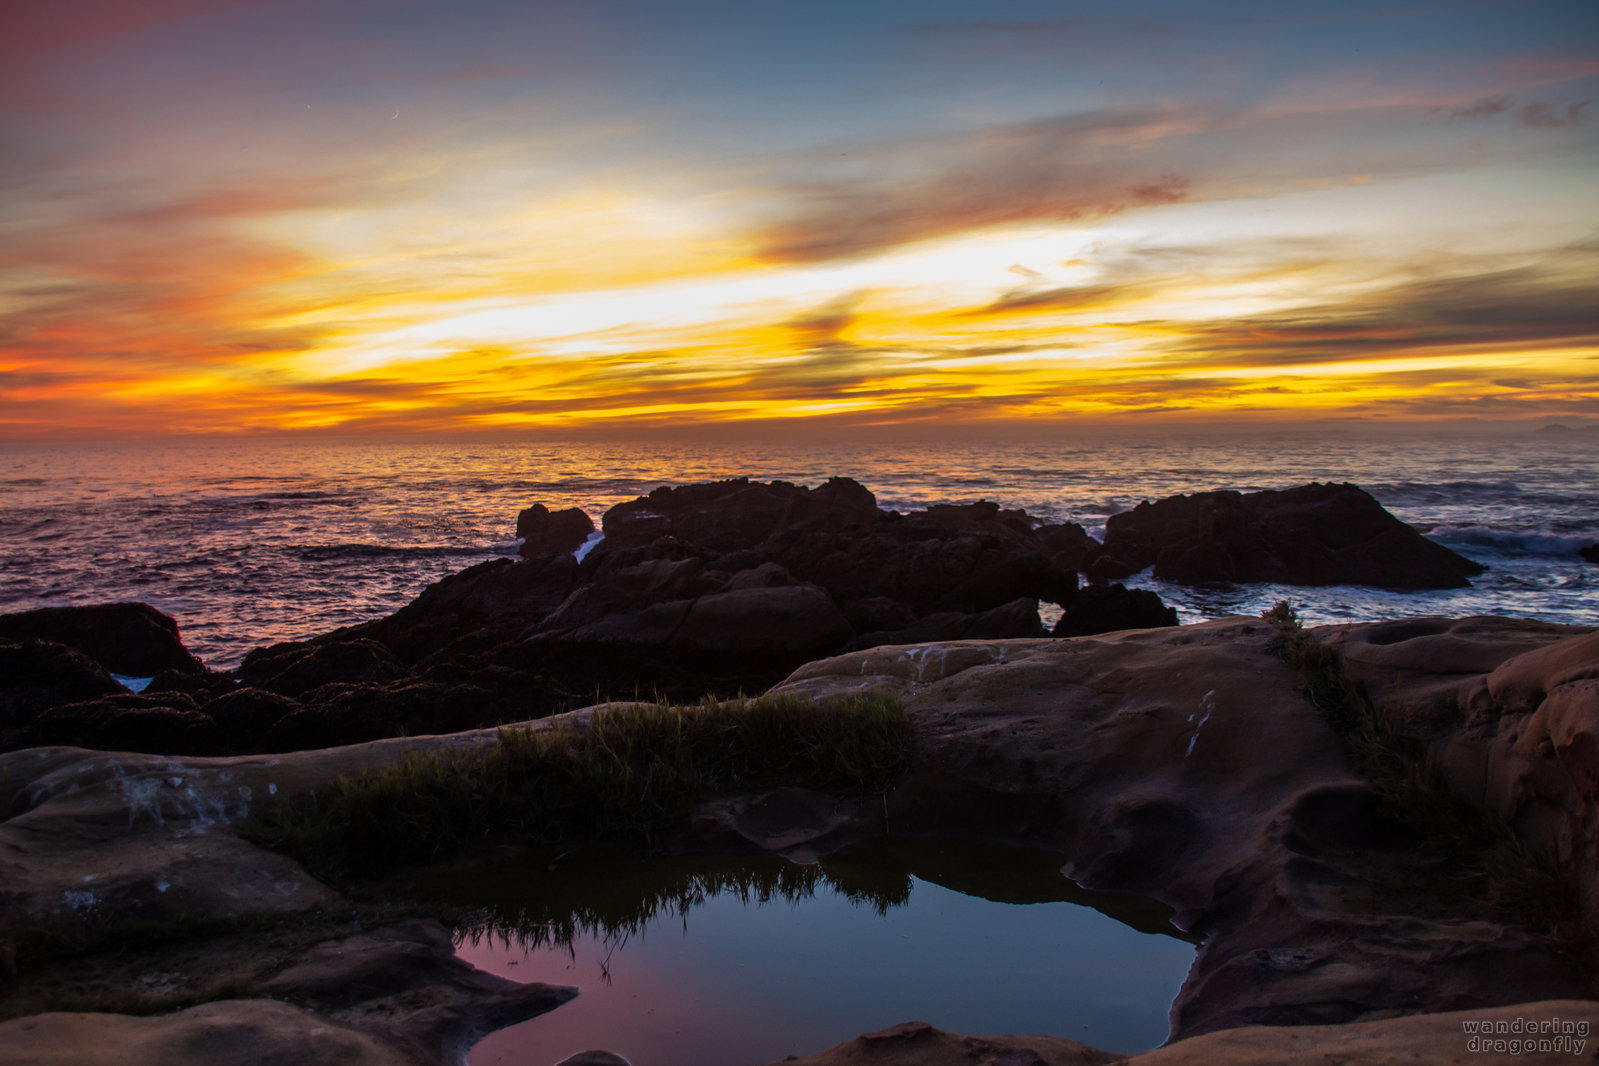 Venus, Moon, sunset, reflection... -- cliff, moon, ocean, pond, reflection, rock, sunset, venus, water